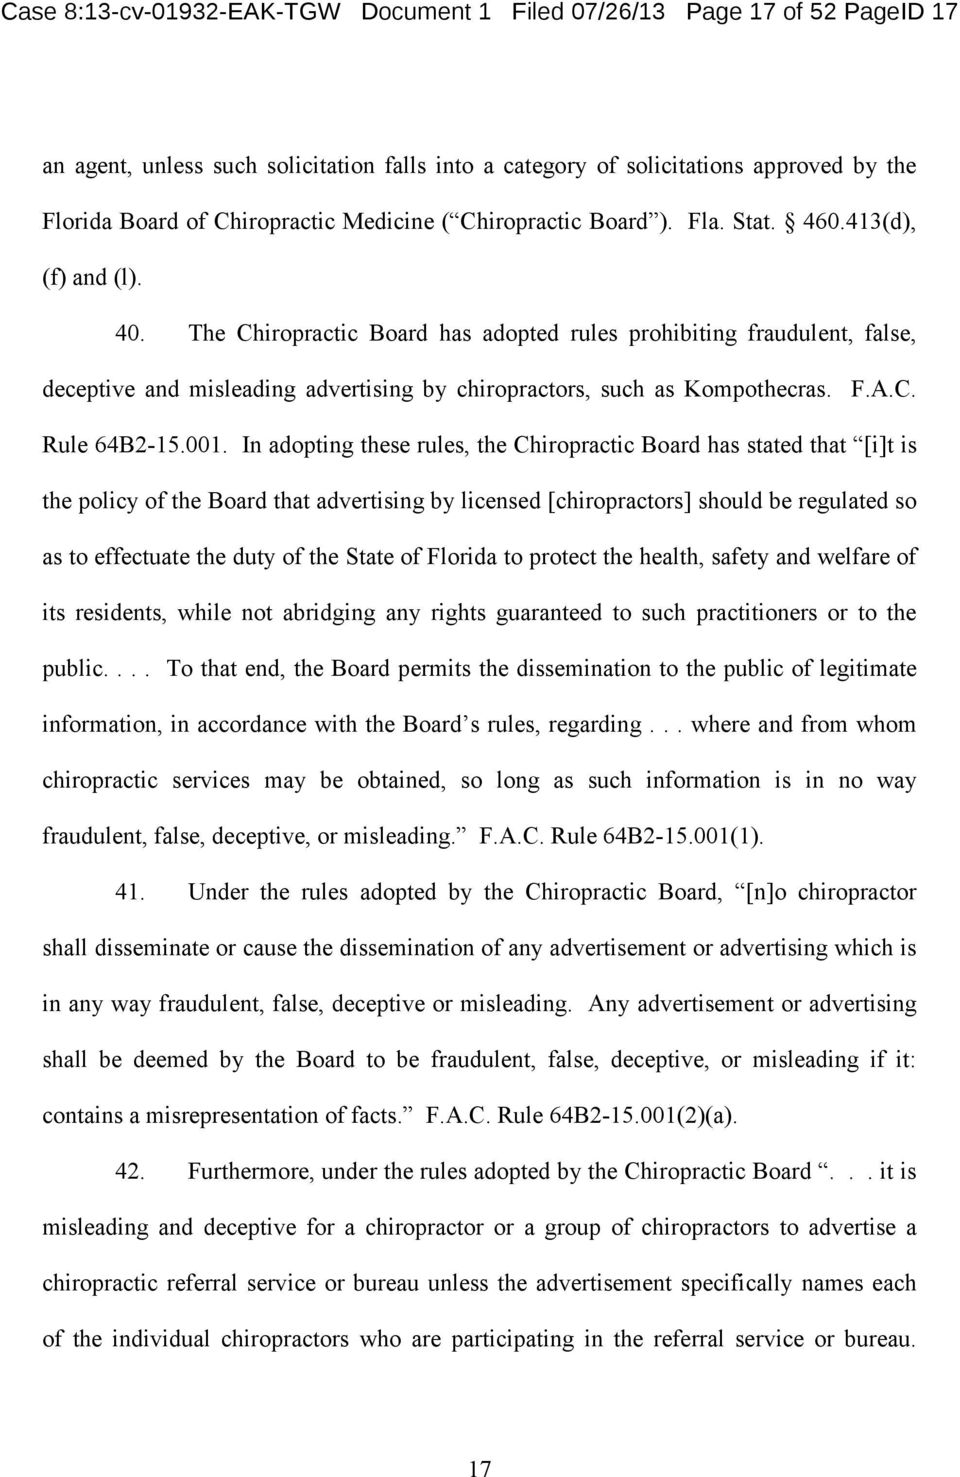 413(d), (f) and (l). 40. The Chiropractic Board has adopted rules prohibiting fraudulent, false, deceptive and misleading advertising by chiropractors, such as Kompothecras. F.A.C. Rule 64B2-15.001.